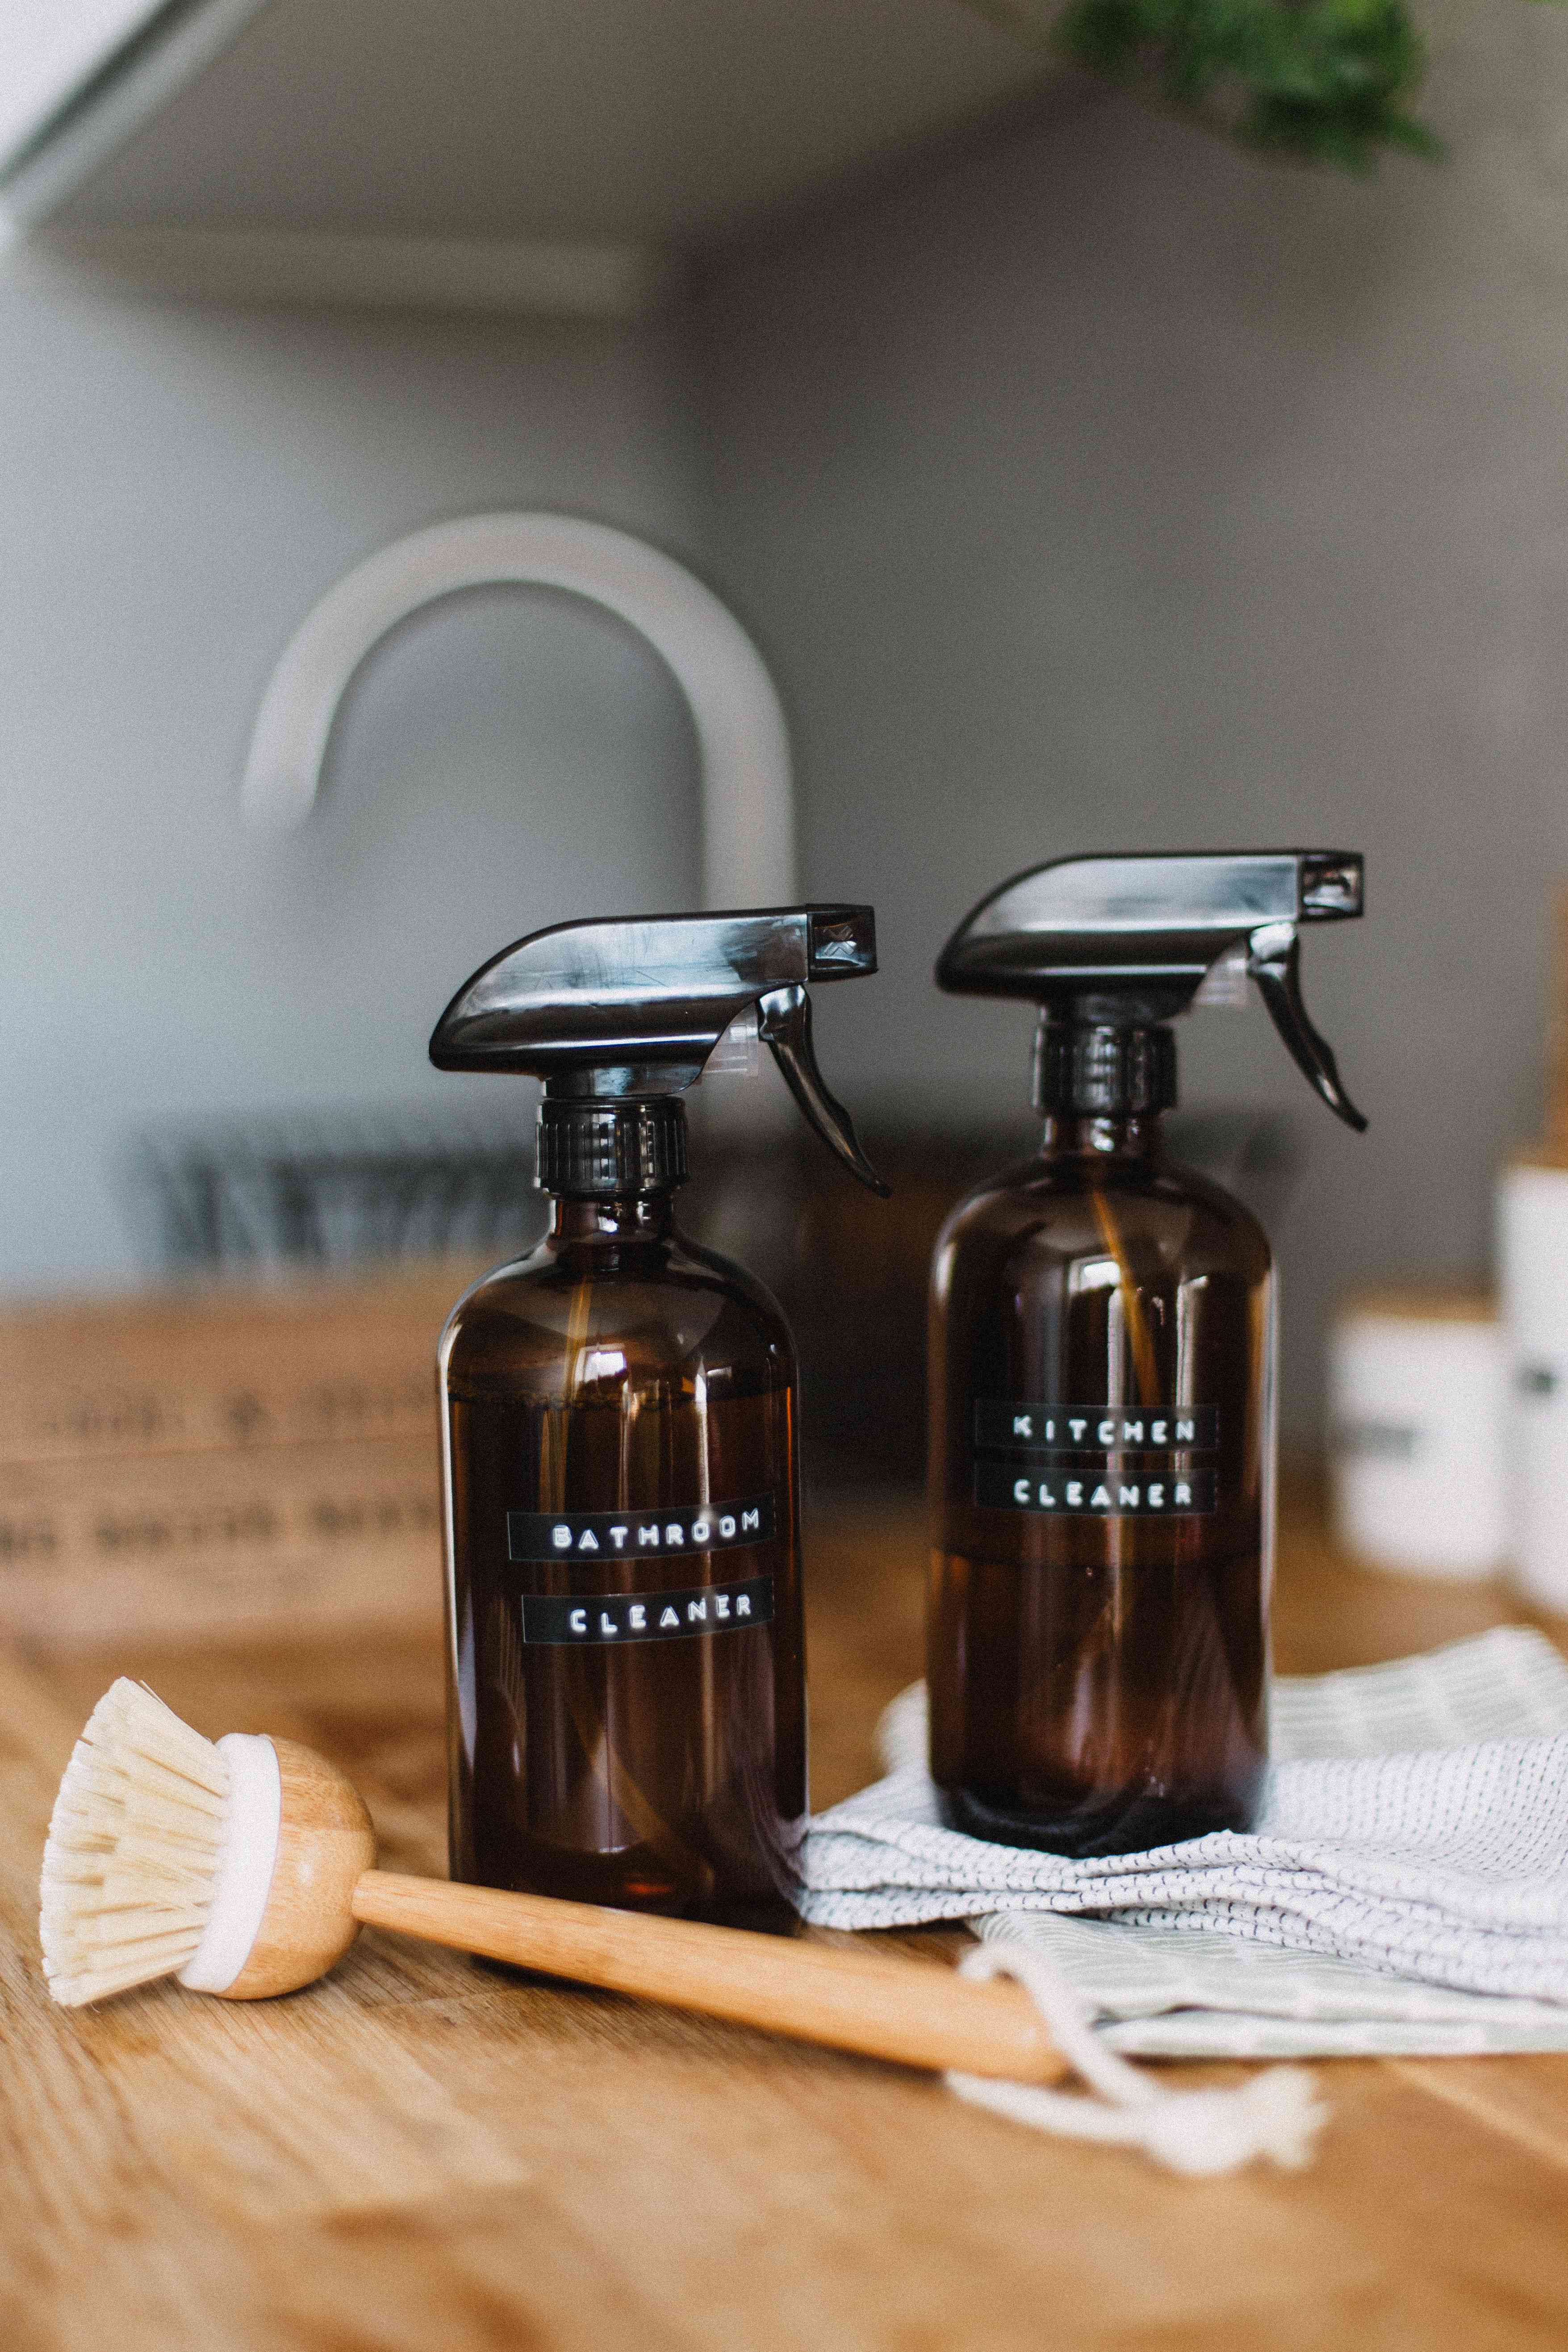 Cleaning sprays on counter in brown glass bottles